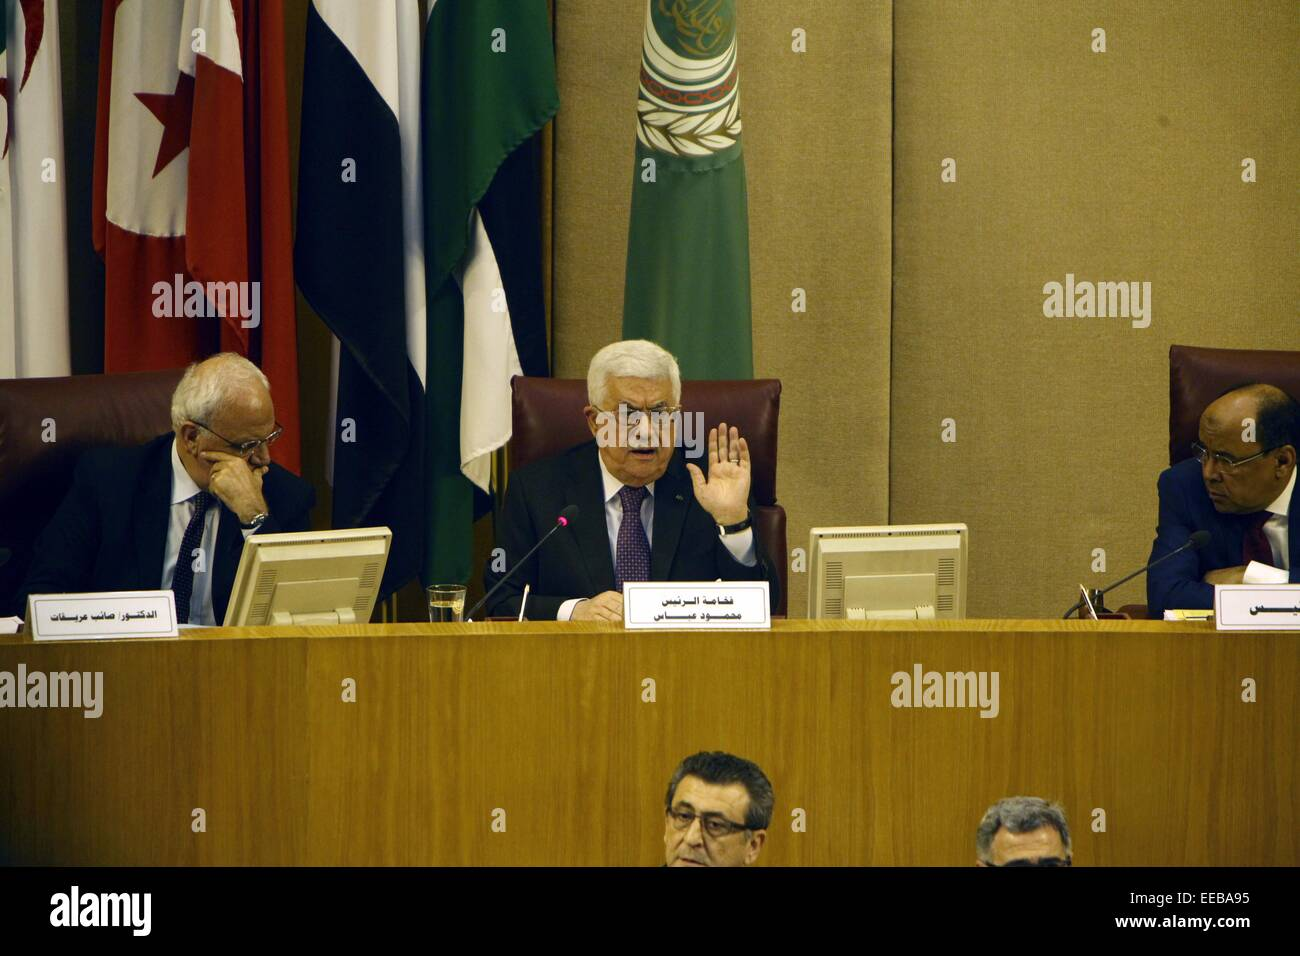 Cairo, Egypt. 15th Jan, 2015. Palestinian President Mahmoud Abbas, attends an Arab League emergency meeting in Cairo, - Stock Image